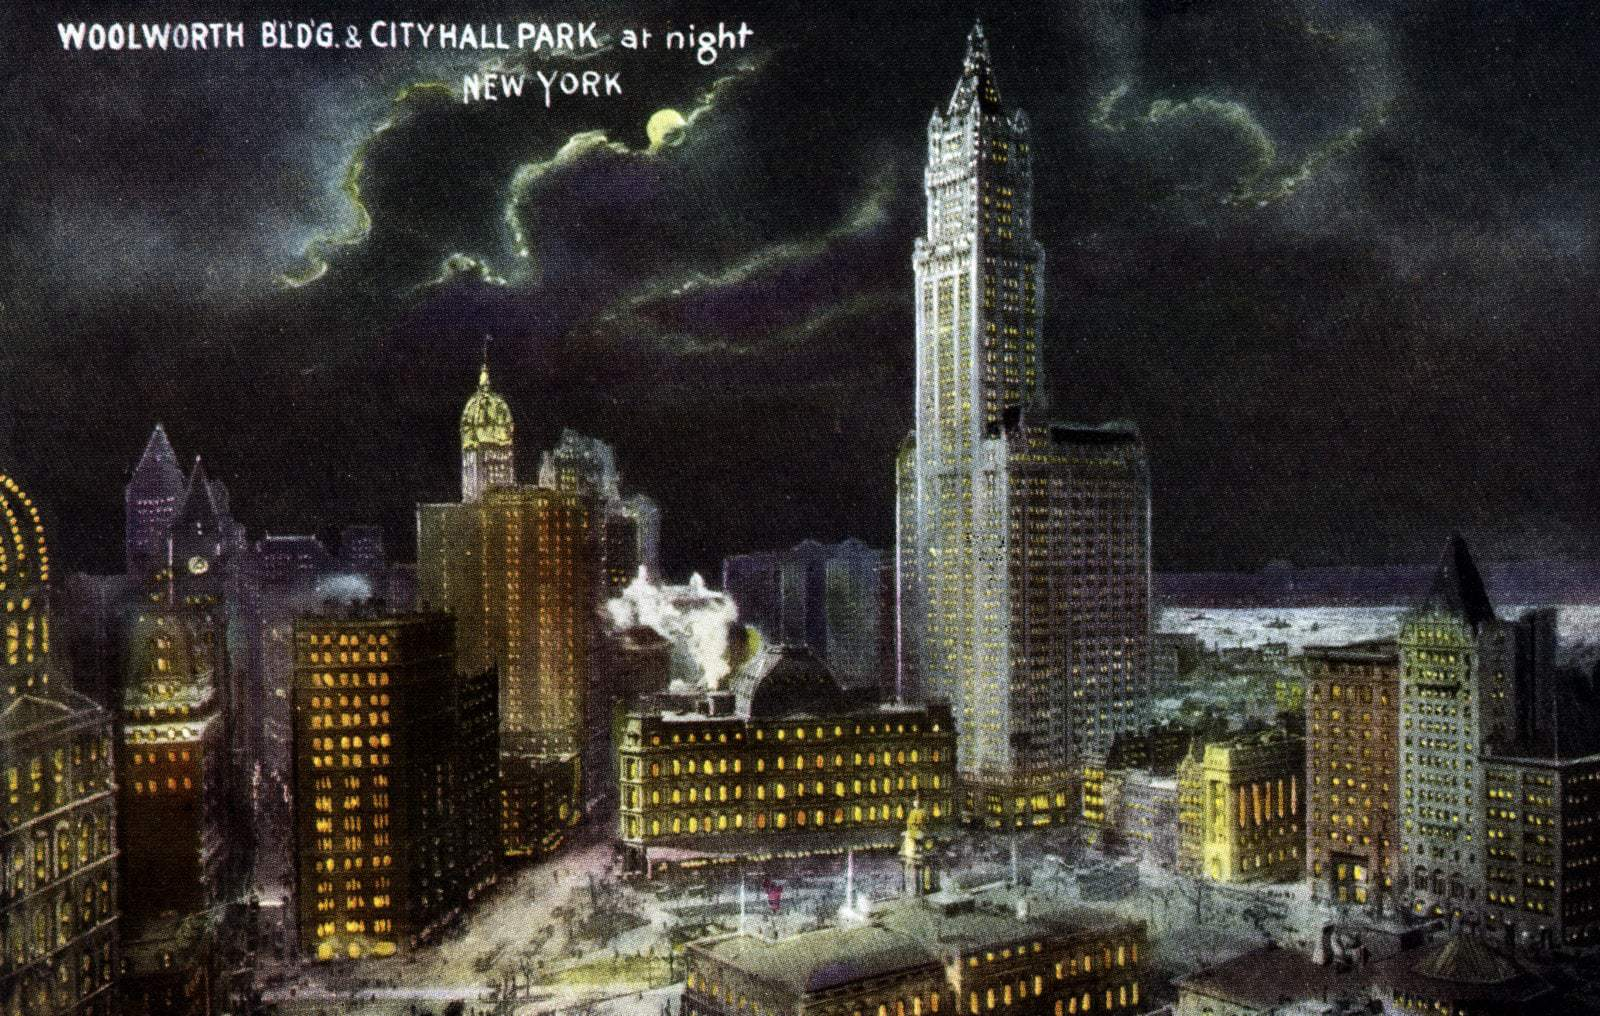 Woolworth Bldg. and City Hall Park at night NYC (1911)